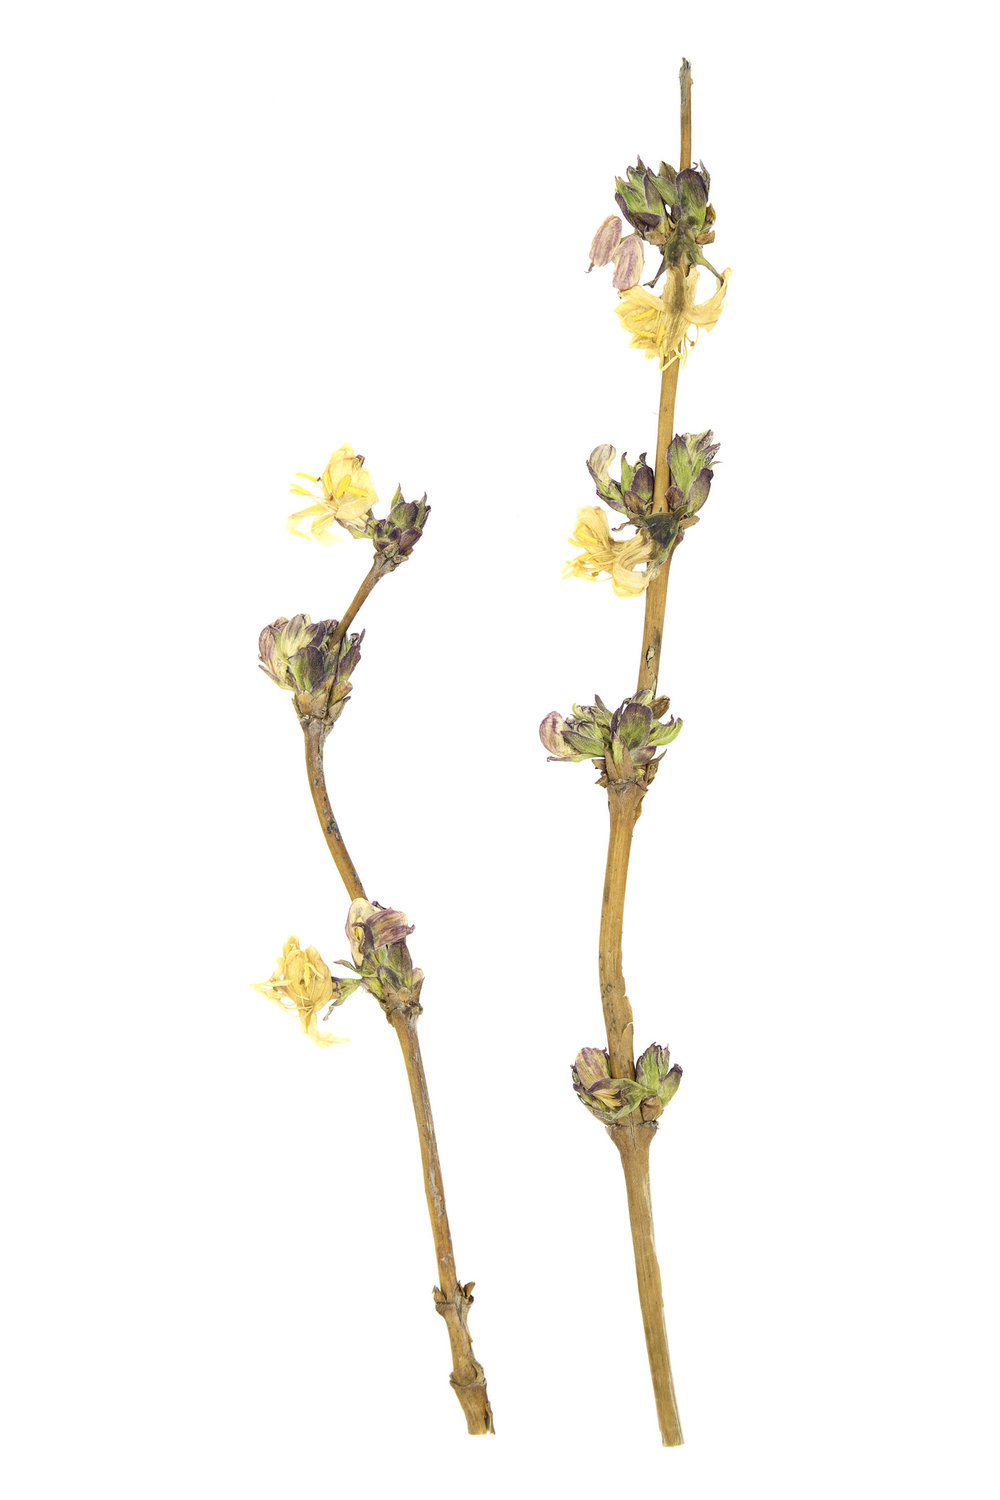 New! Winter Honeysuckle / Lonicera fragrantissima